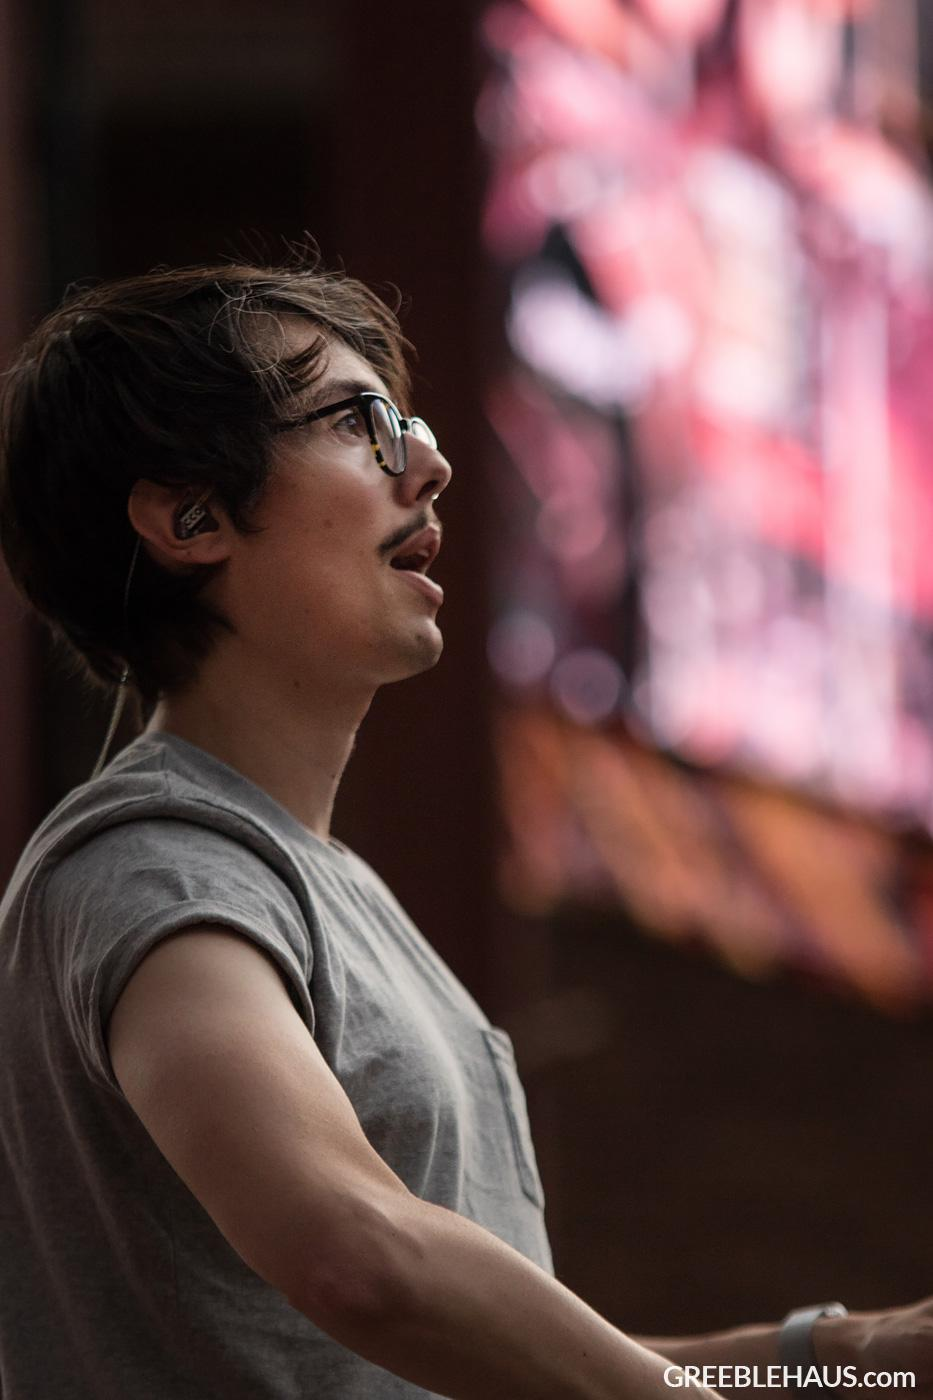 Joywave concert photos from Red Rocks Denver